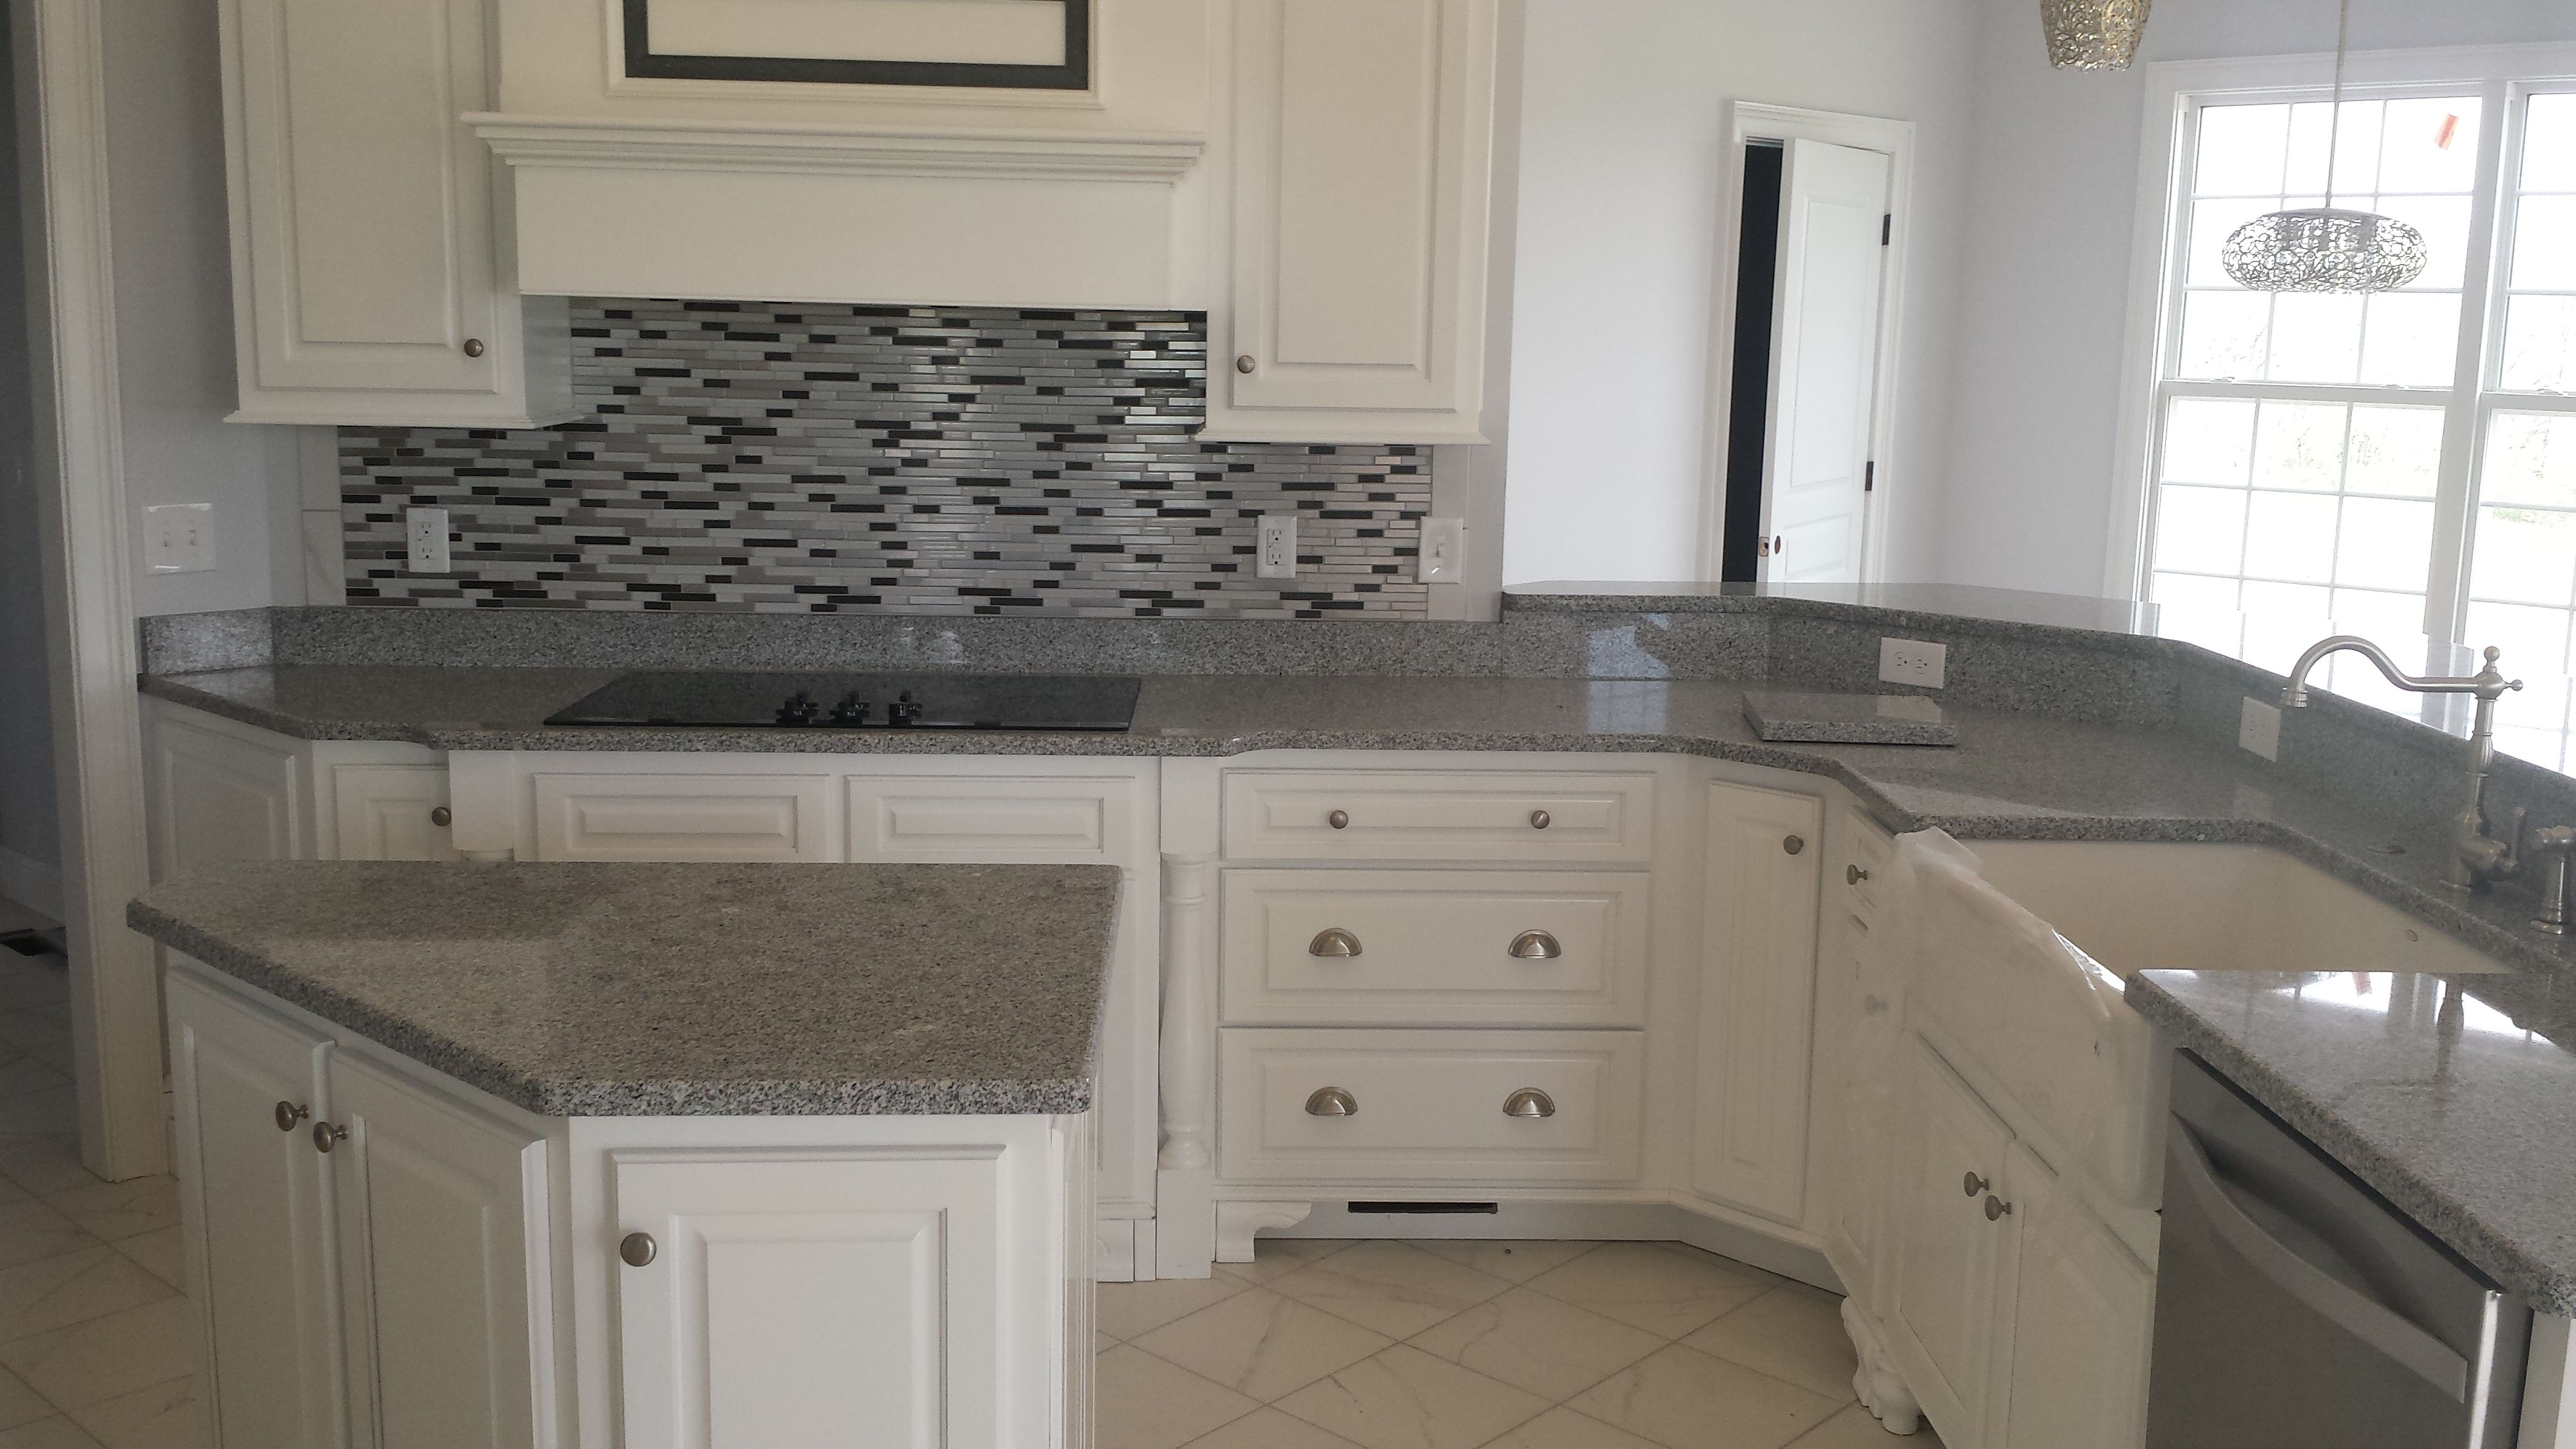 kitchen alberta of together ga size baltimore cabinets bc full with texas east plus ottawa augusta sale near also used me granite countertops for